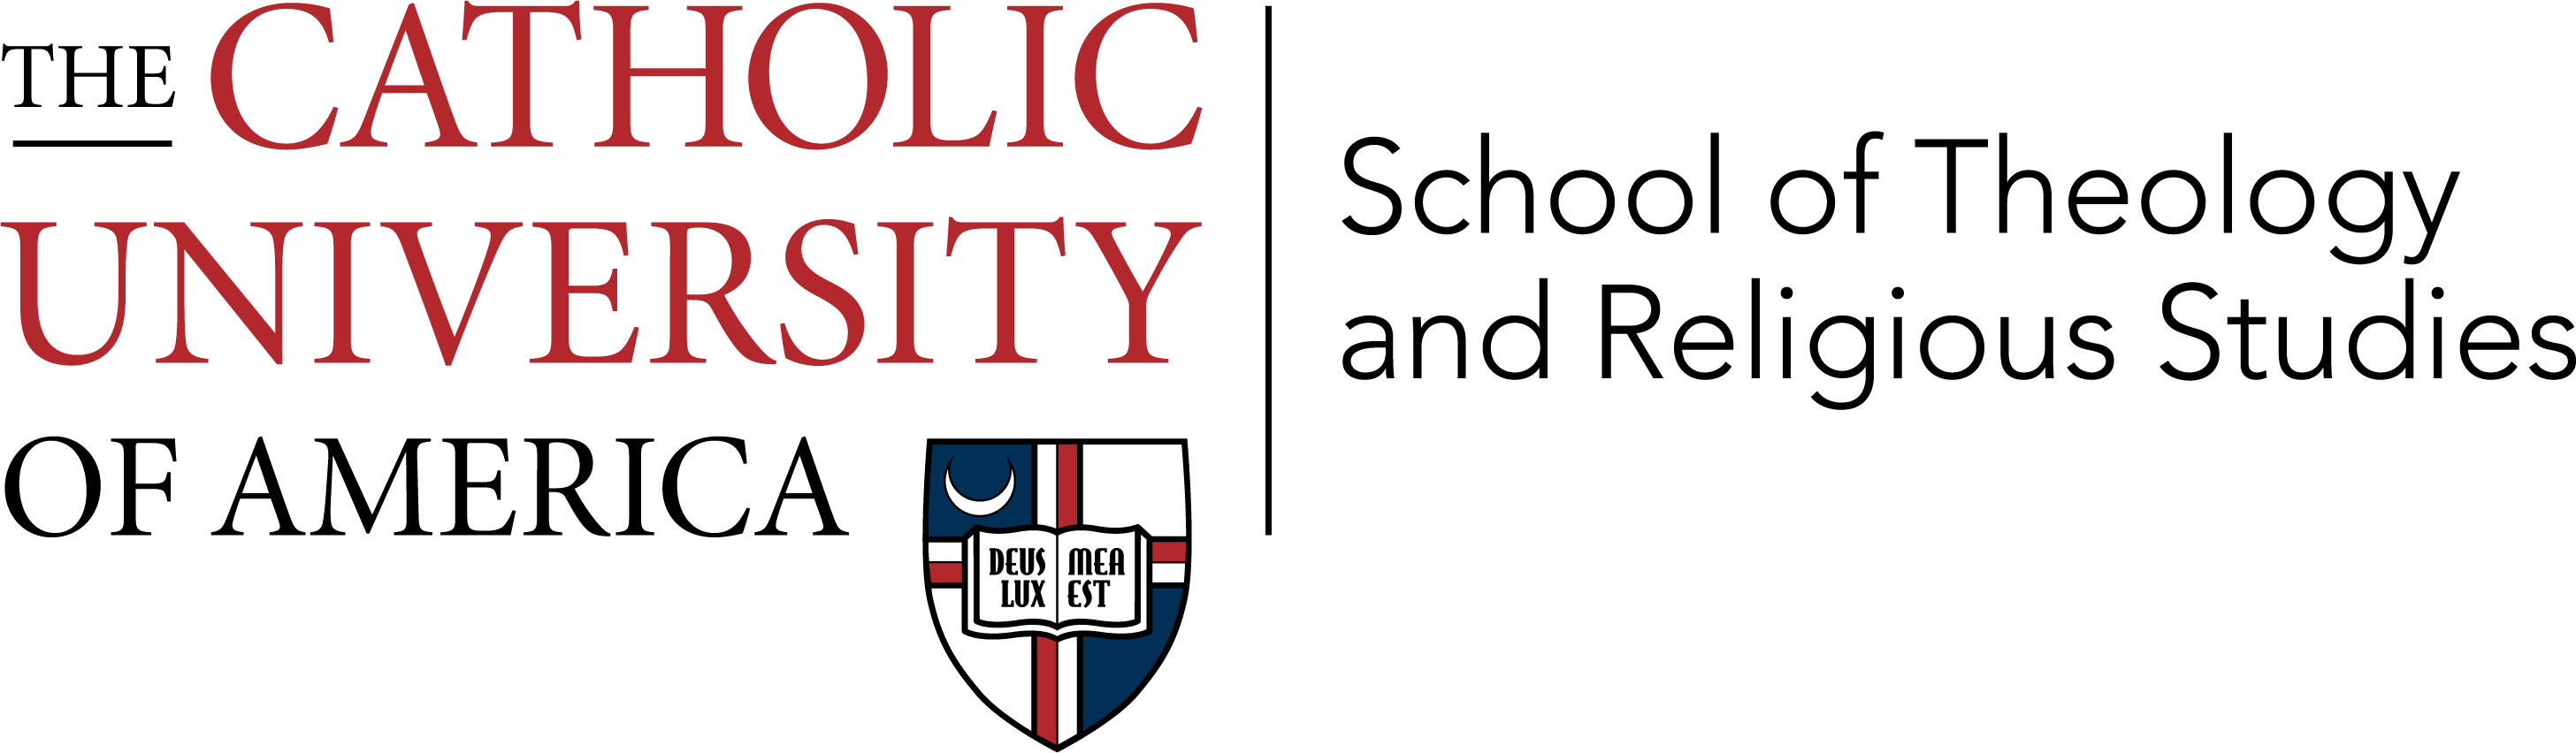 School of Theology and Religious Studies logo